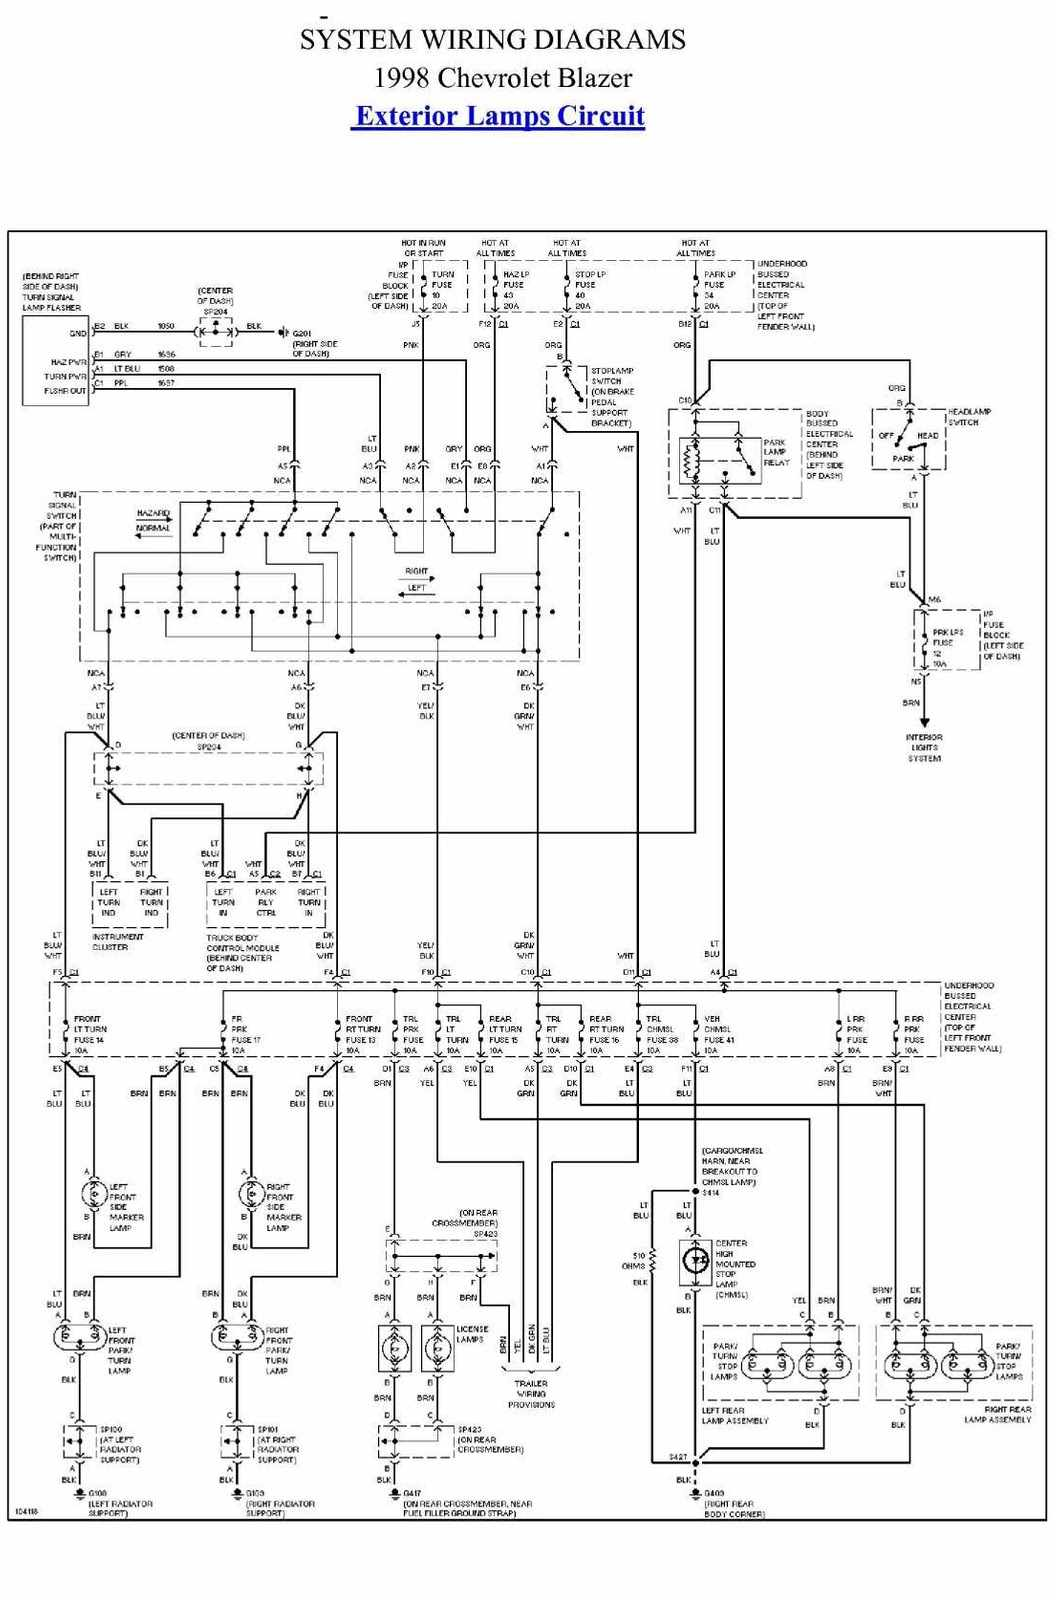 2003 chevy blazer fuel pump wiring diagram